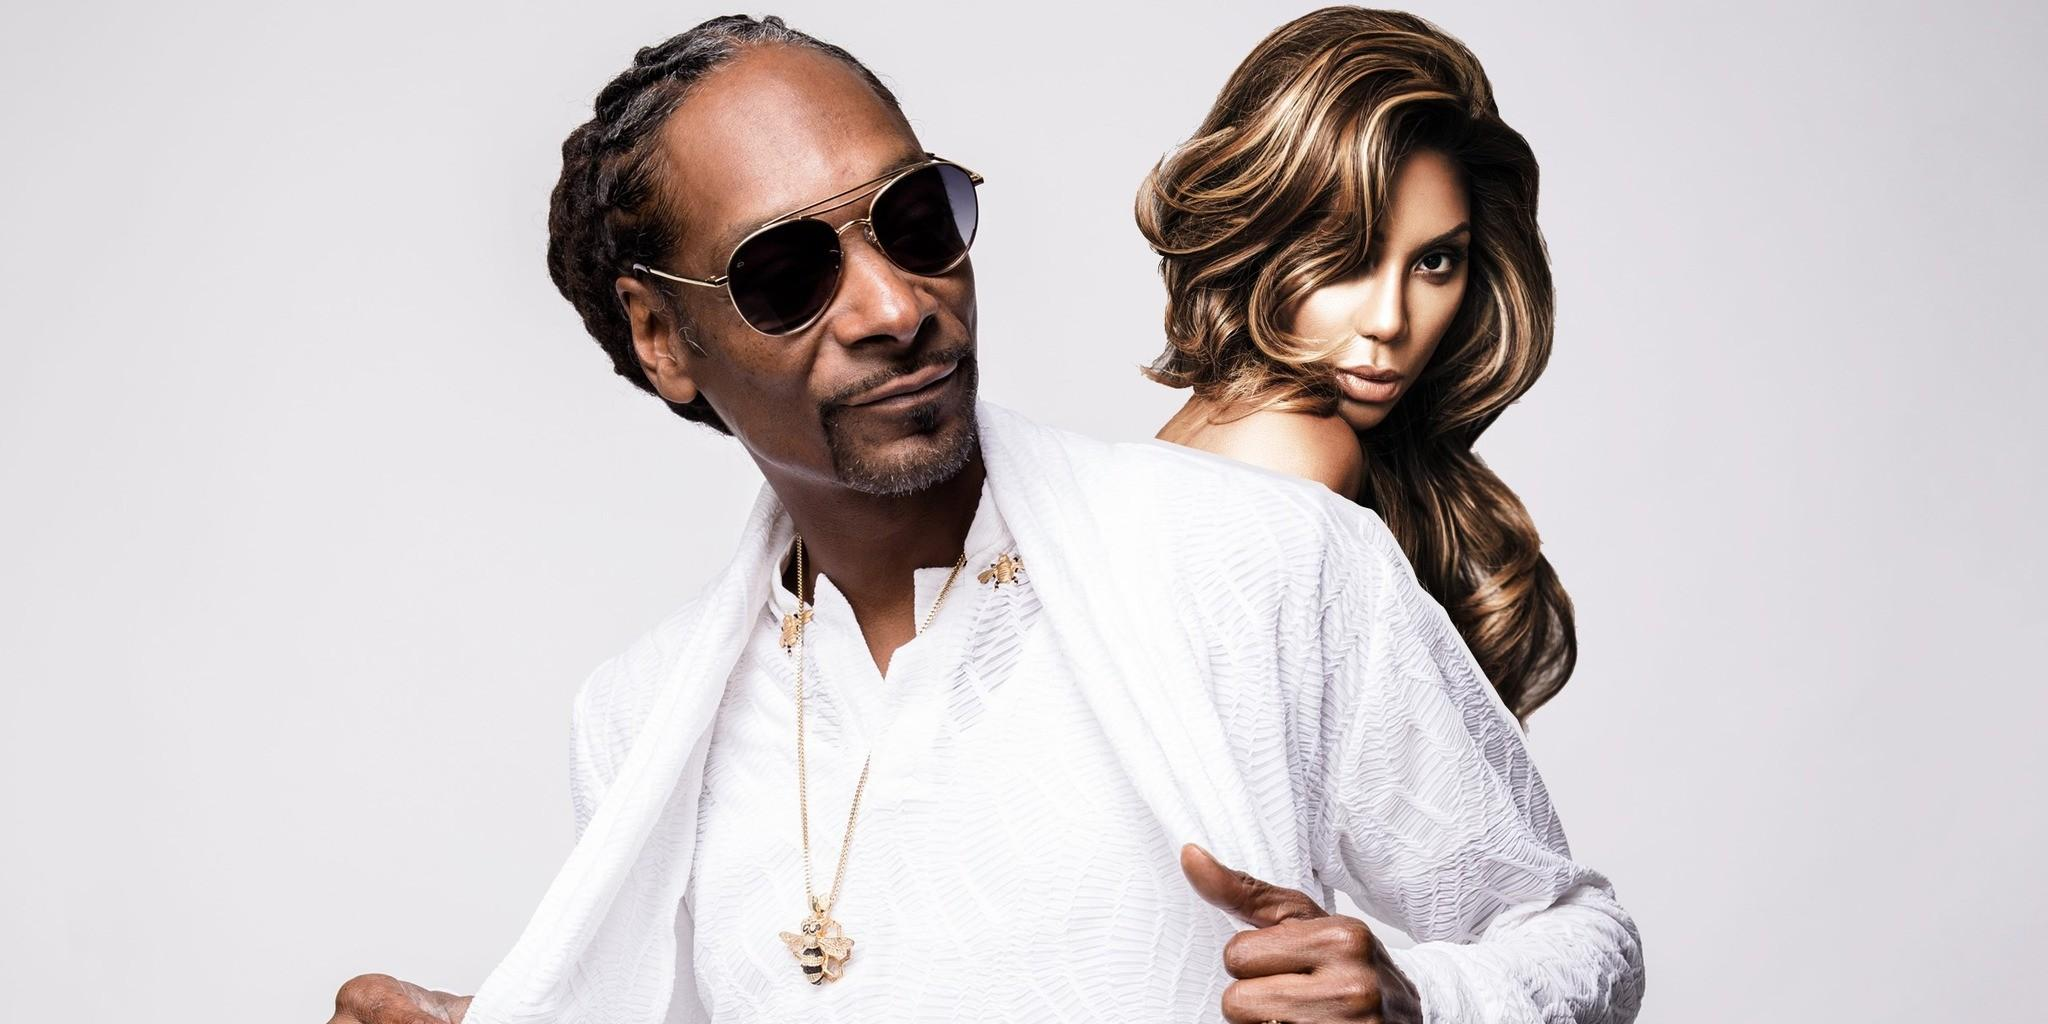 Tamar Braxton Is Back With Her 'Brother' Snoop Dogg - Check Out Their Funny Photo Together